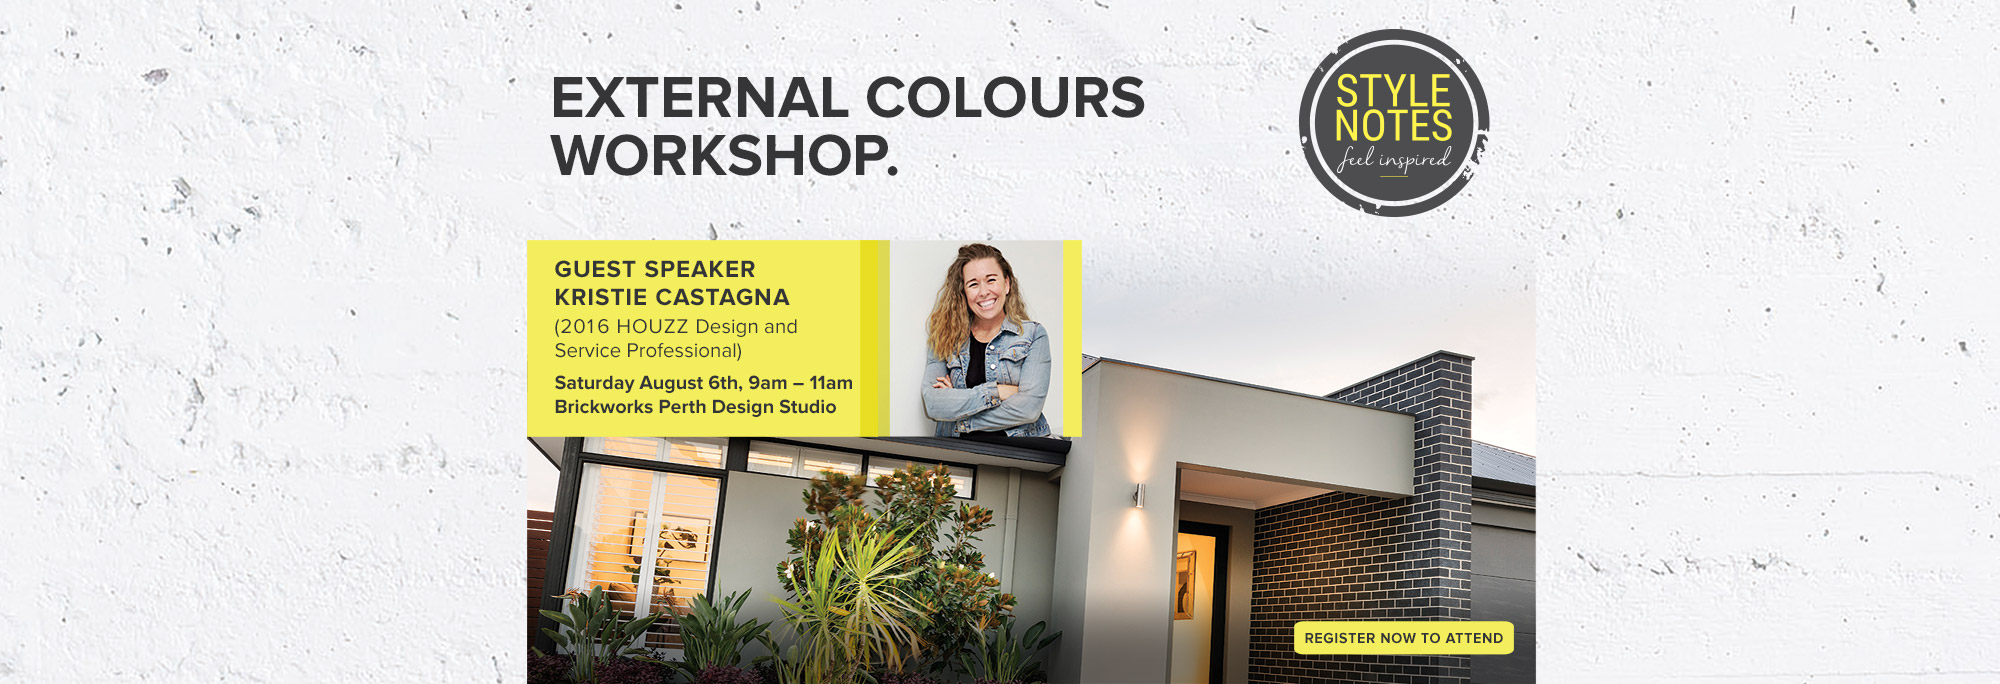 Style Notes External Colours Workshop with Kristie Castagna - August 5th